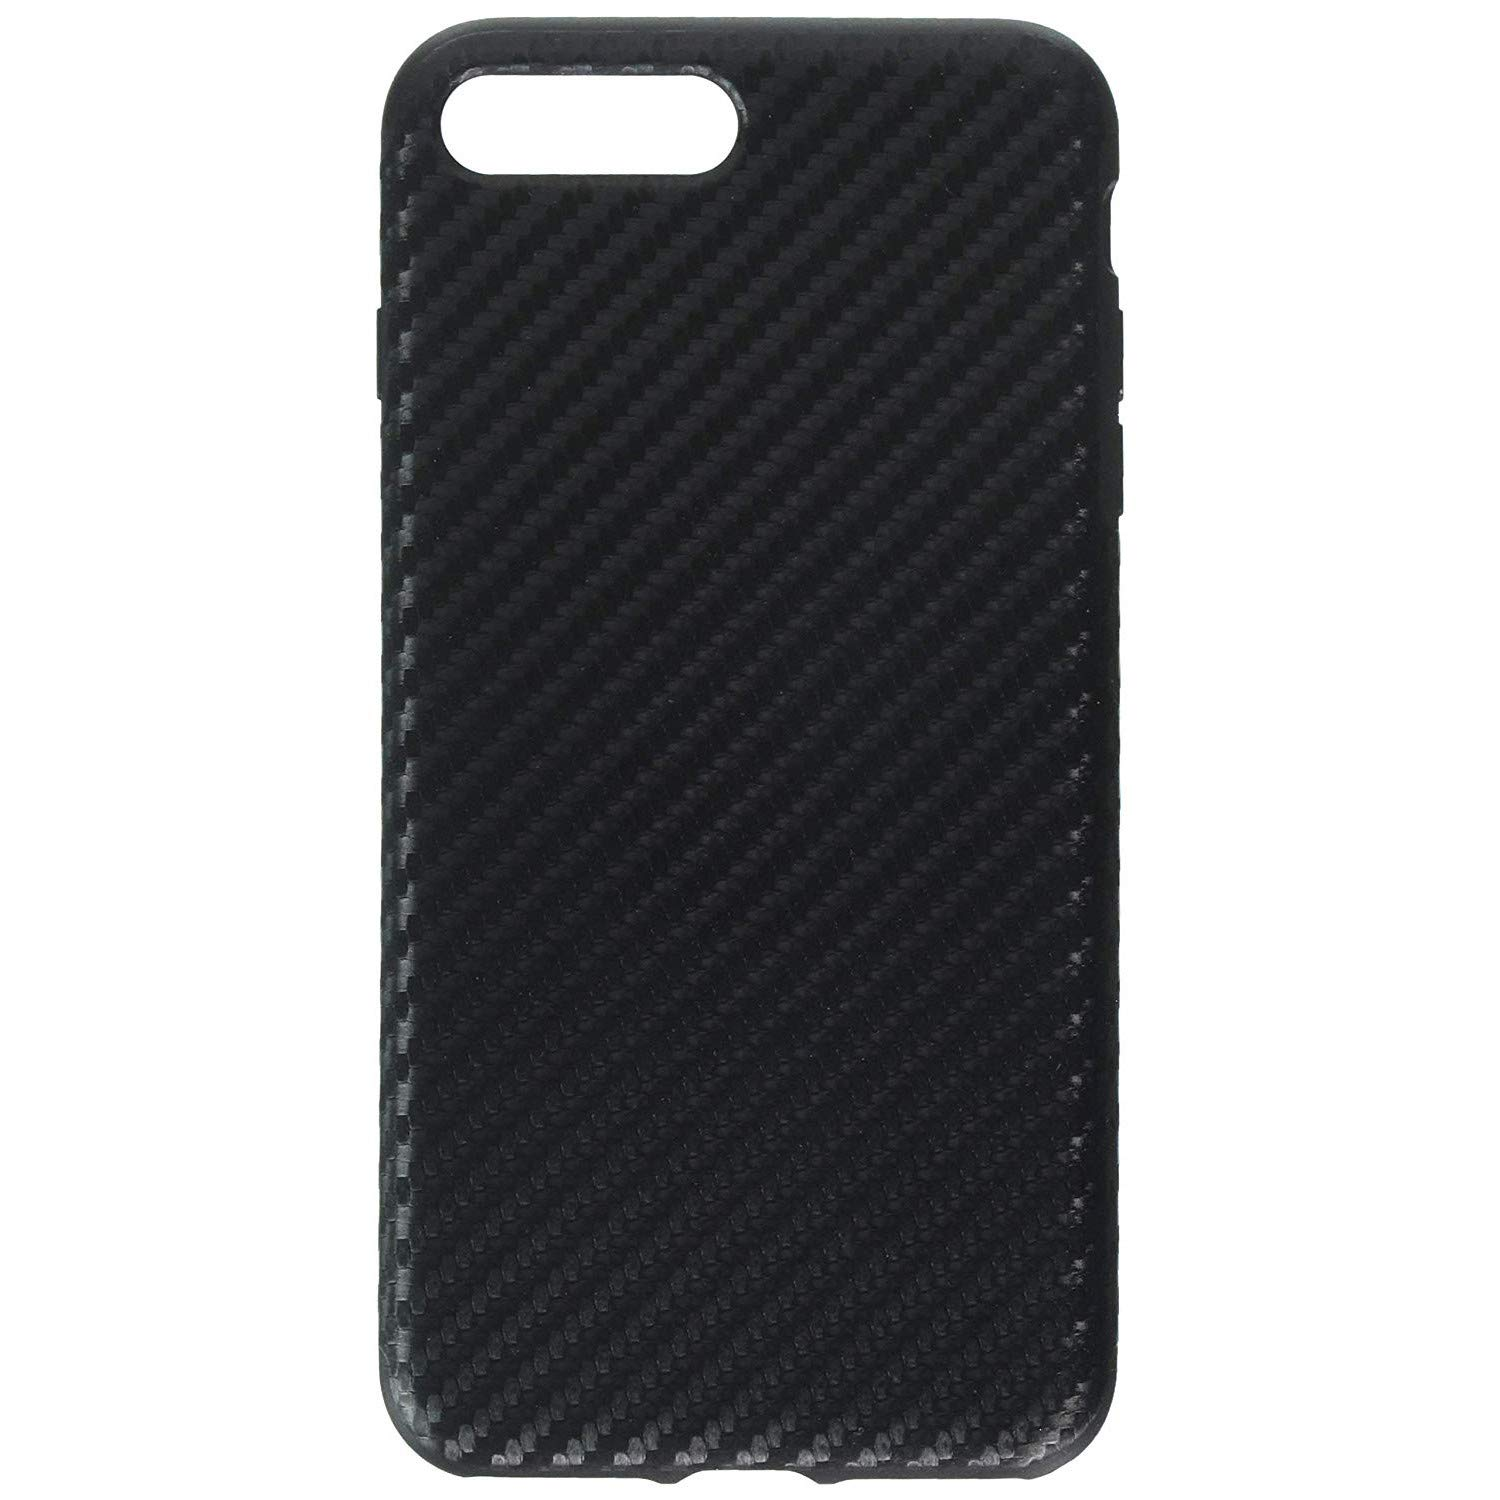 iPhone 7 Plus Case, Rock [Carbon Fiber] - [Light Thin Cover] [Non Slip] [Fingerprint Free] Case for iPhone 7 Plus - Black